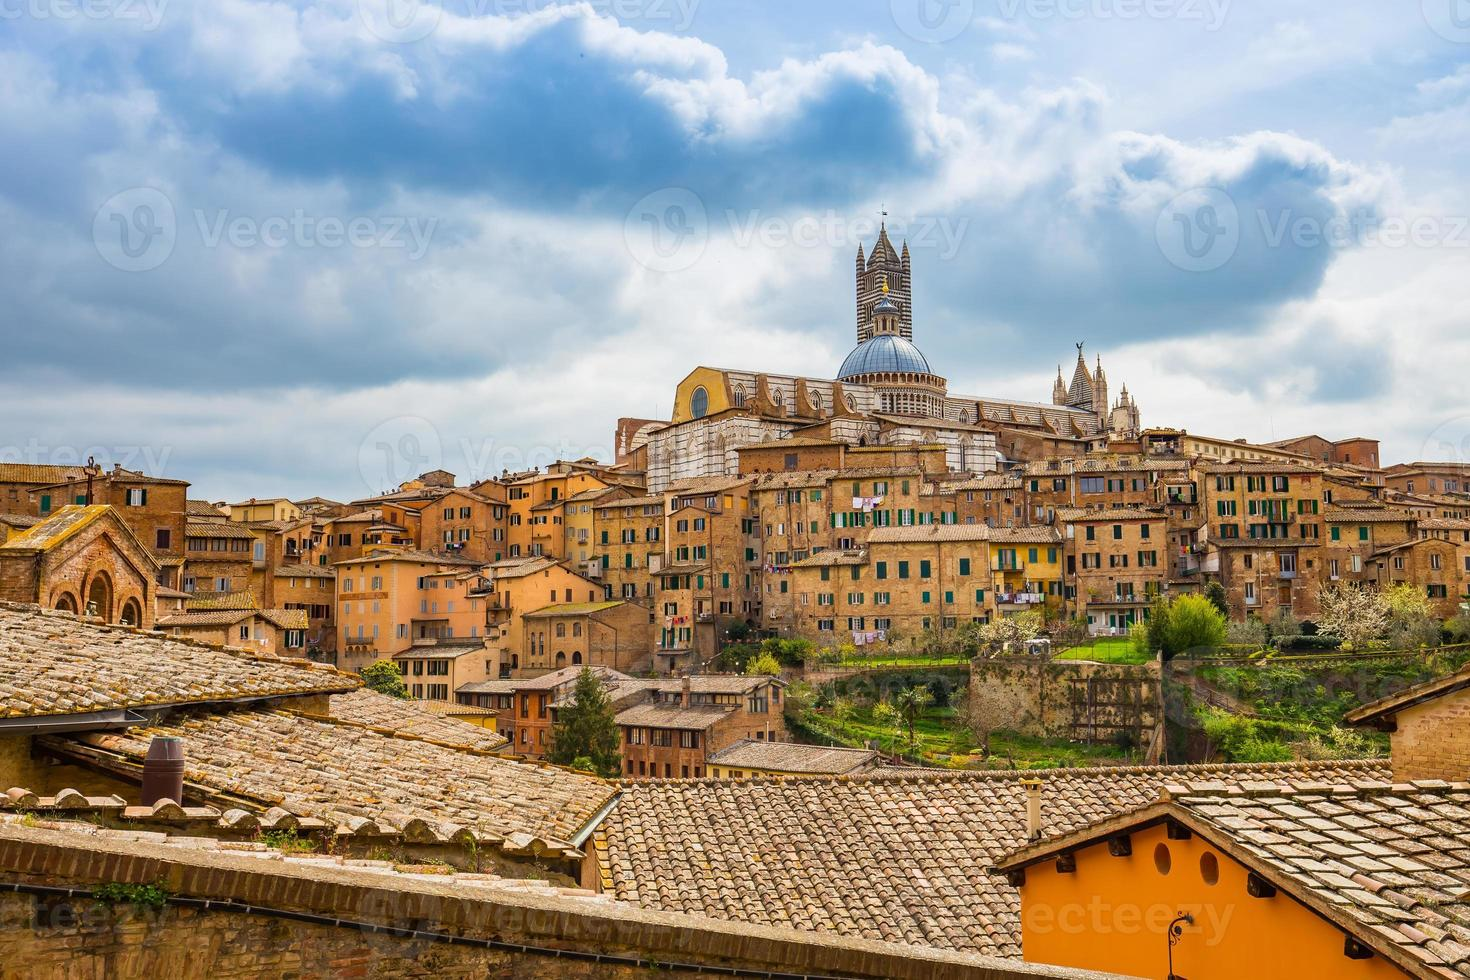 The Siena cityscape in southern Tuscany, Italy photo